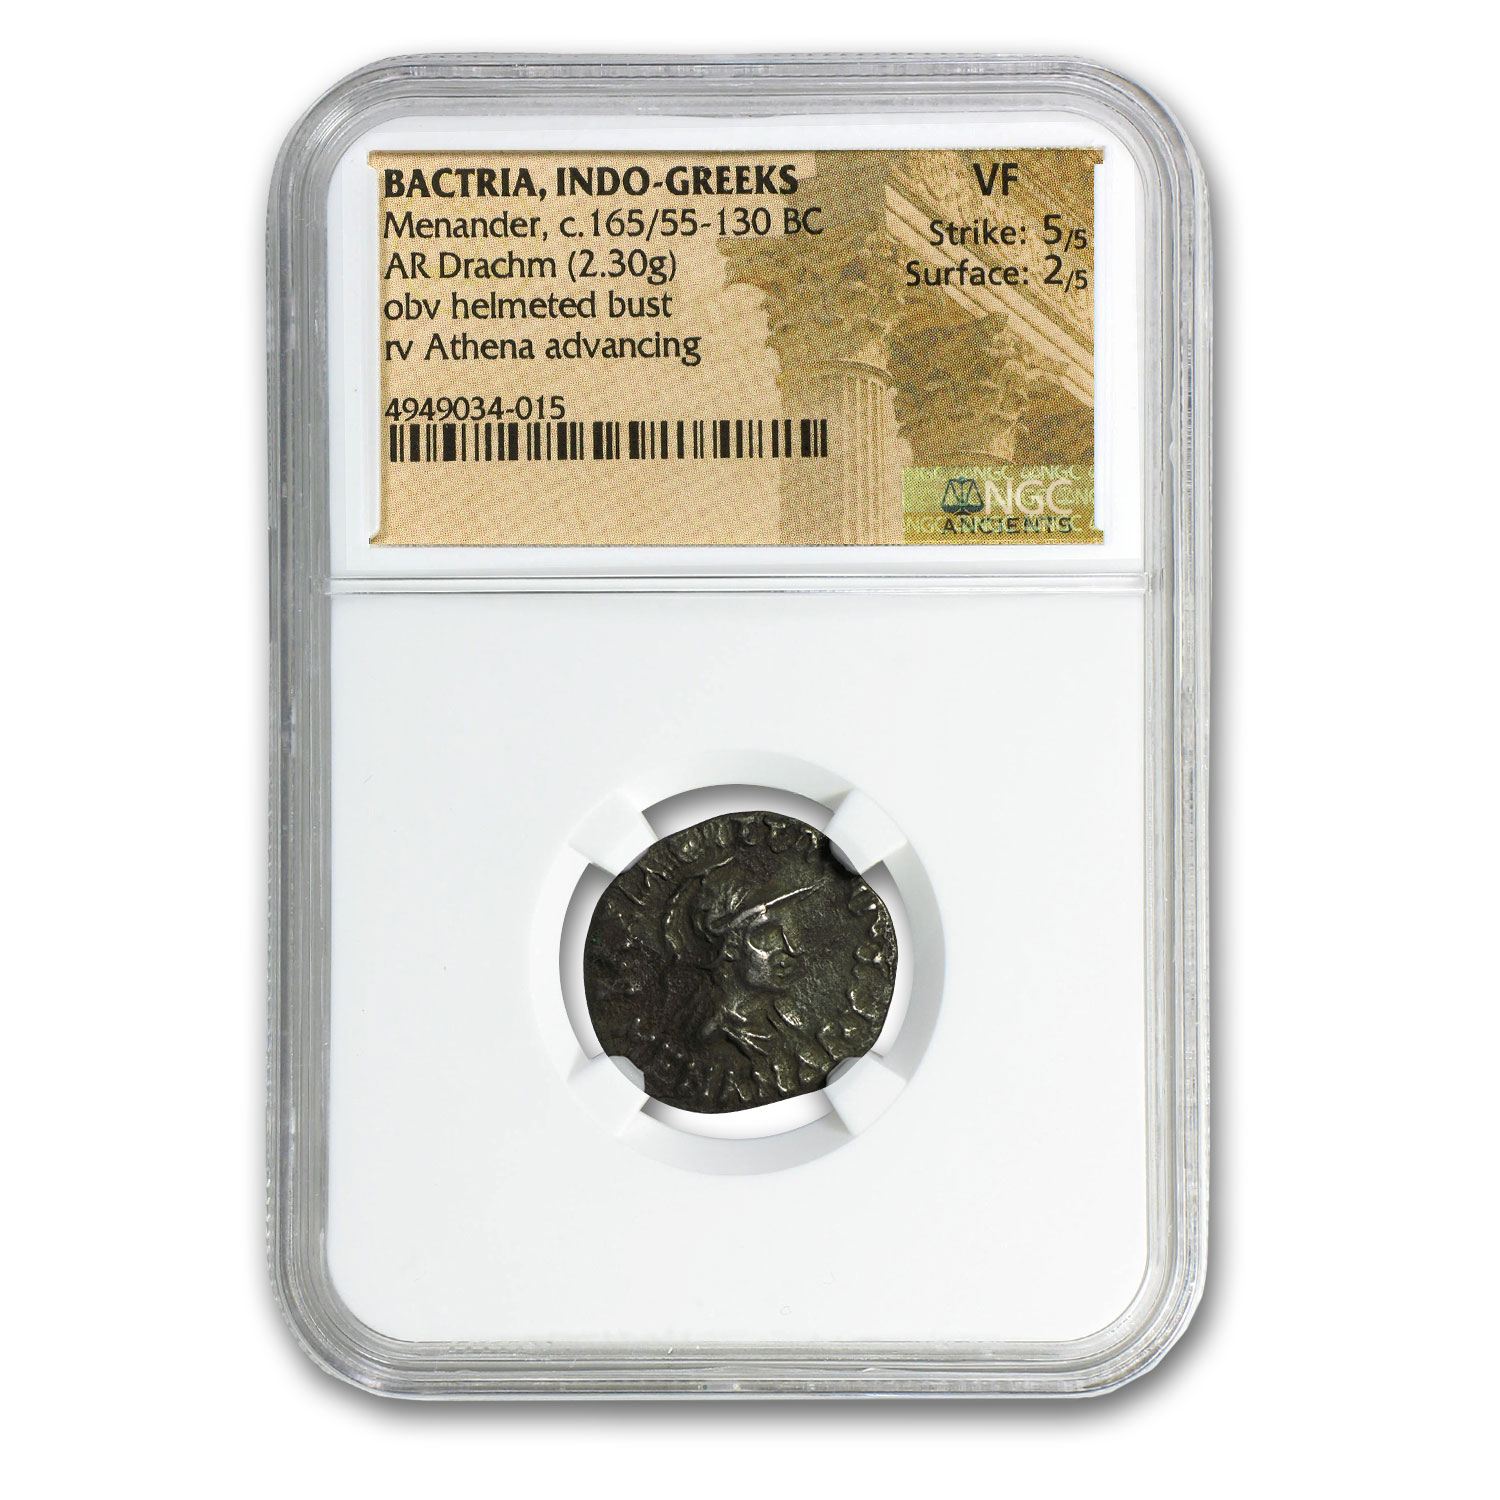 Bactria Indo-Greeks Menander AR Drachm (165/55-130 BC) VF NGC